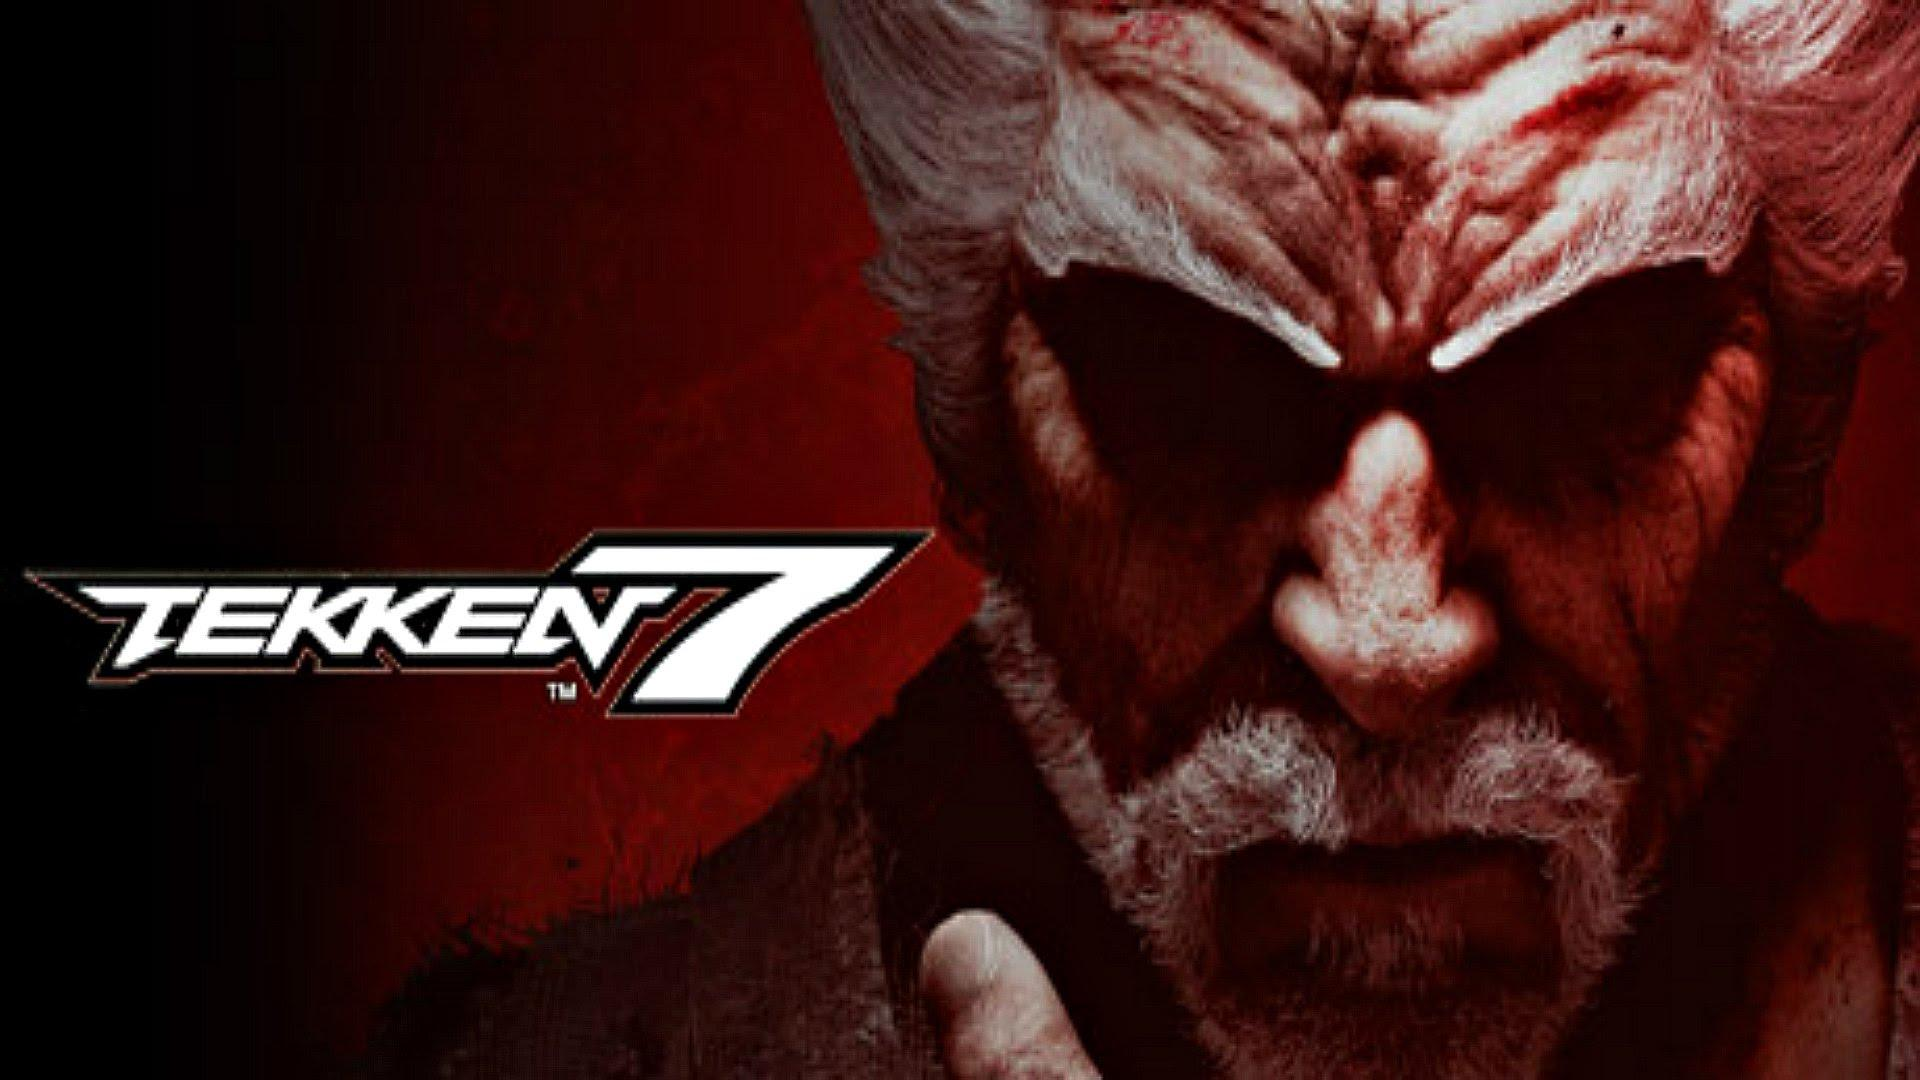 Games Tekken 7 Heihachi vs Kazuya wallpapers (Desktop, Phone, Tablet ...